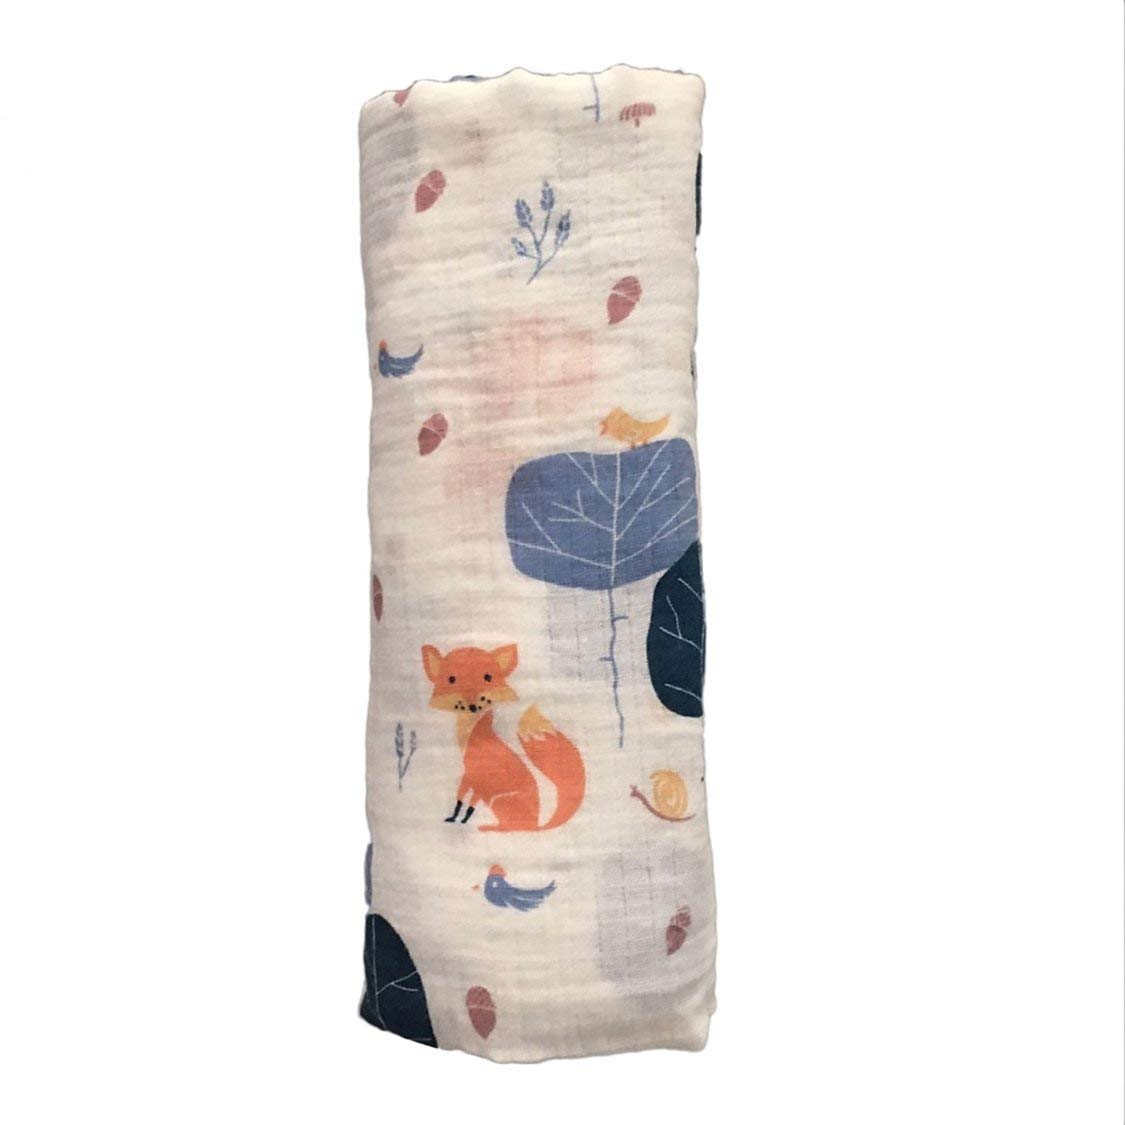 120x120cm Muslin baby swaddle blanket baby swaddle Cotton 100/% Newborn Baby Bath Towel Swaddle Blankets Multi Designs Functions